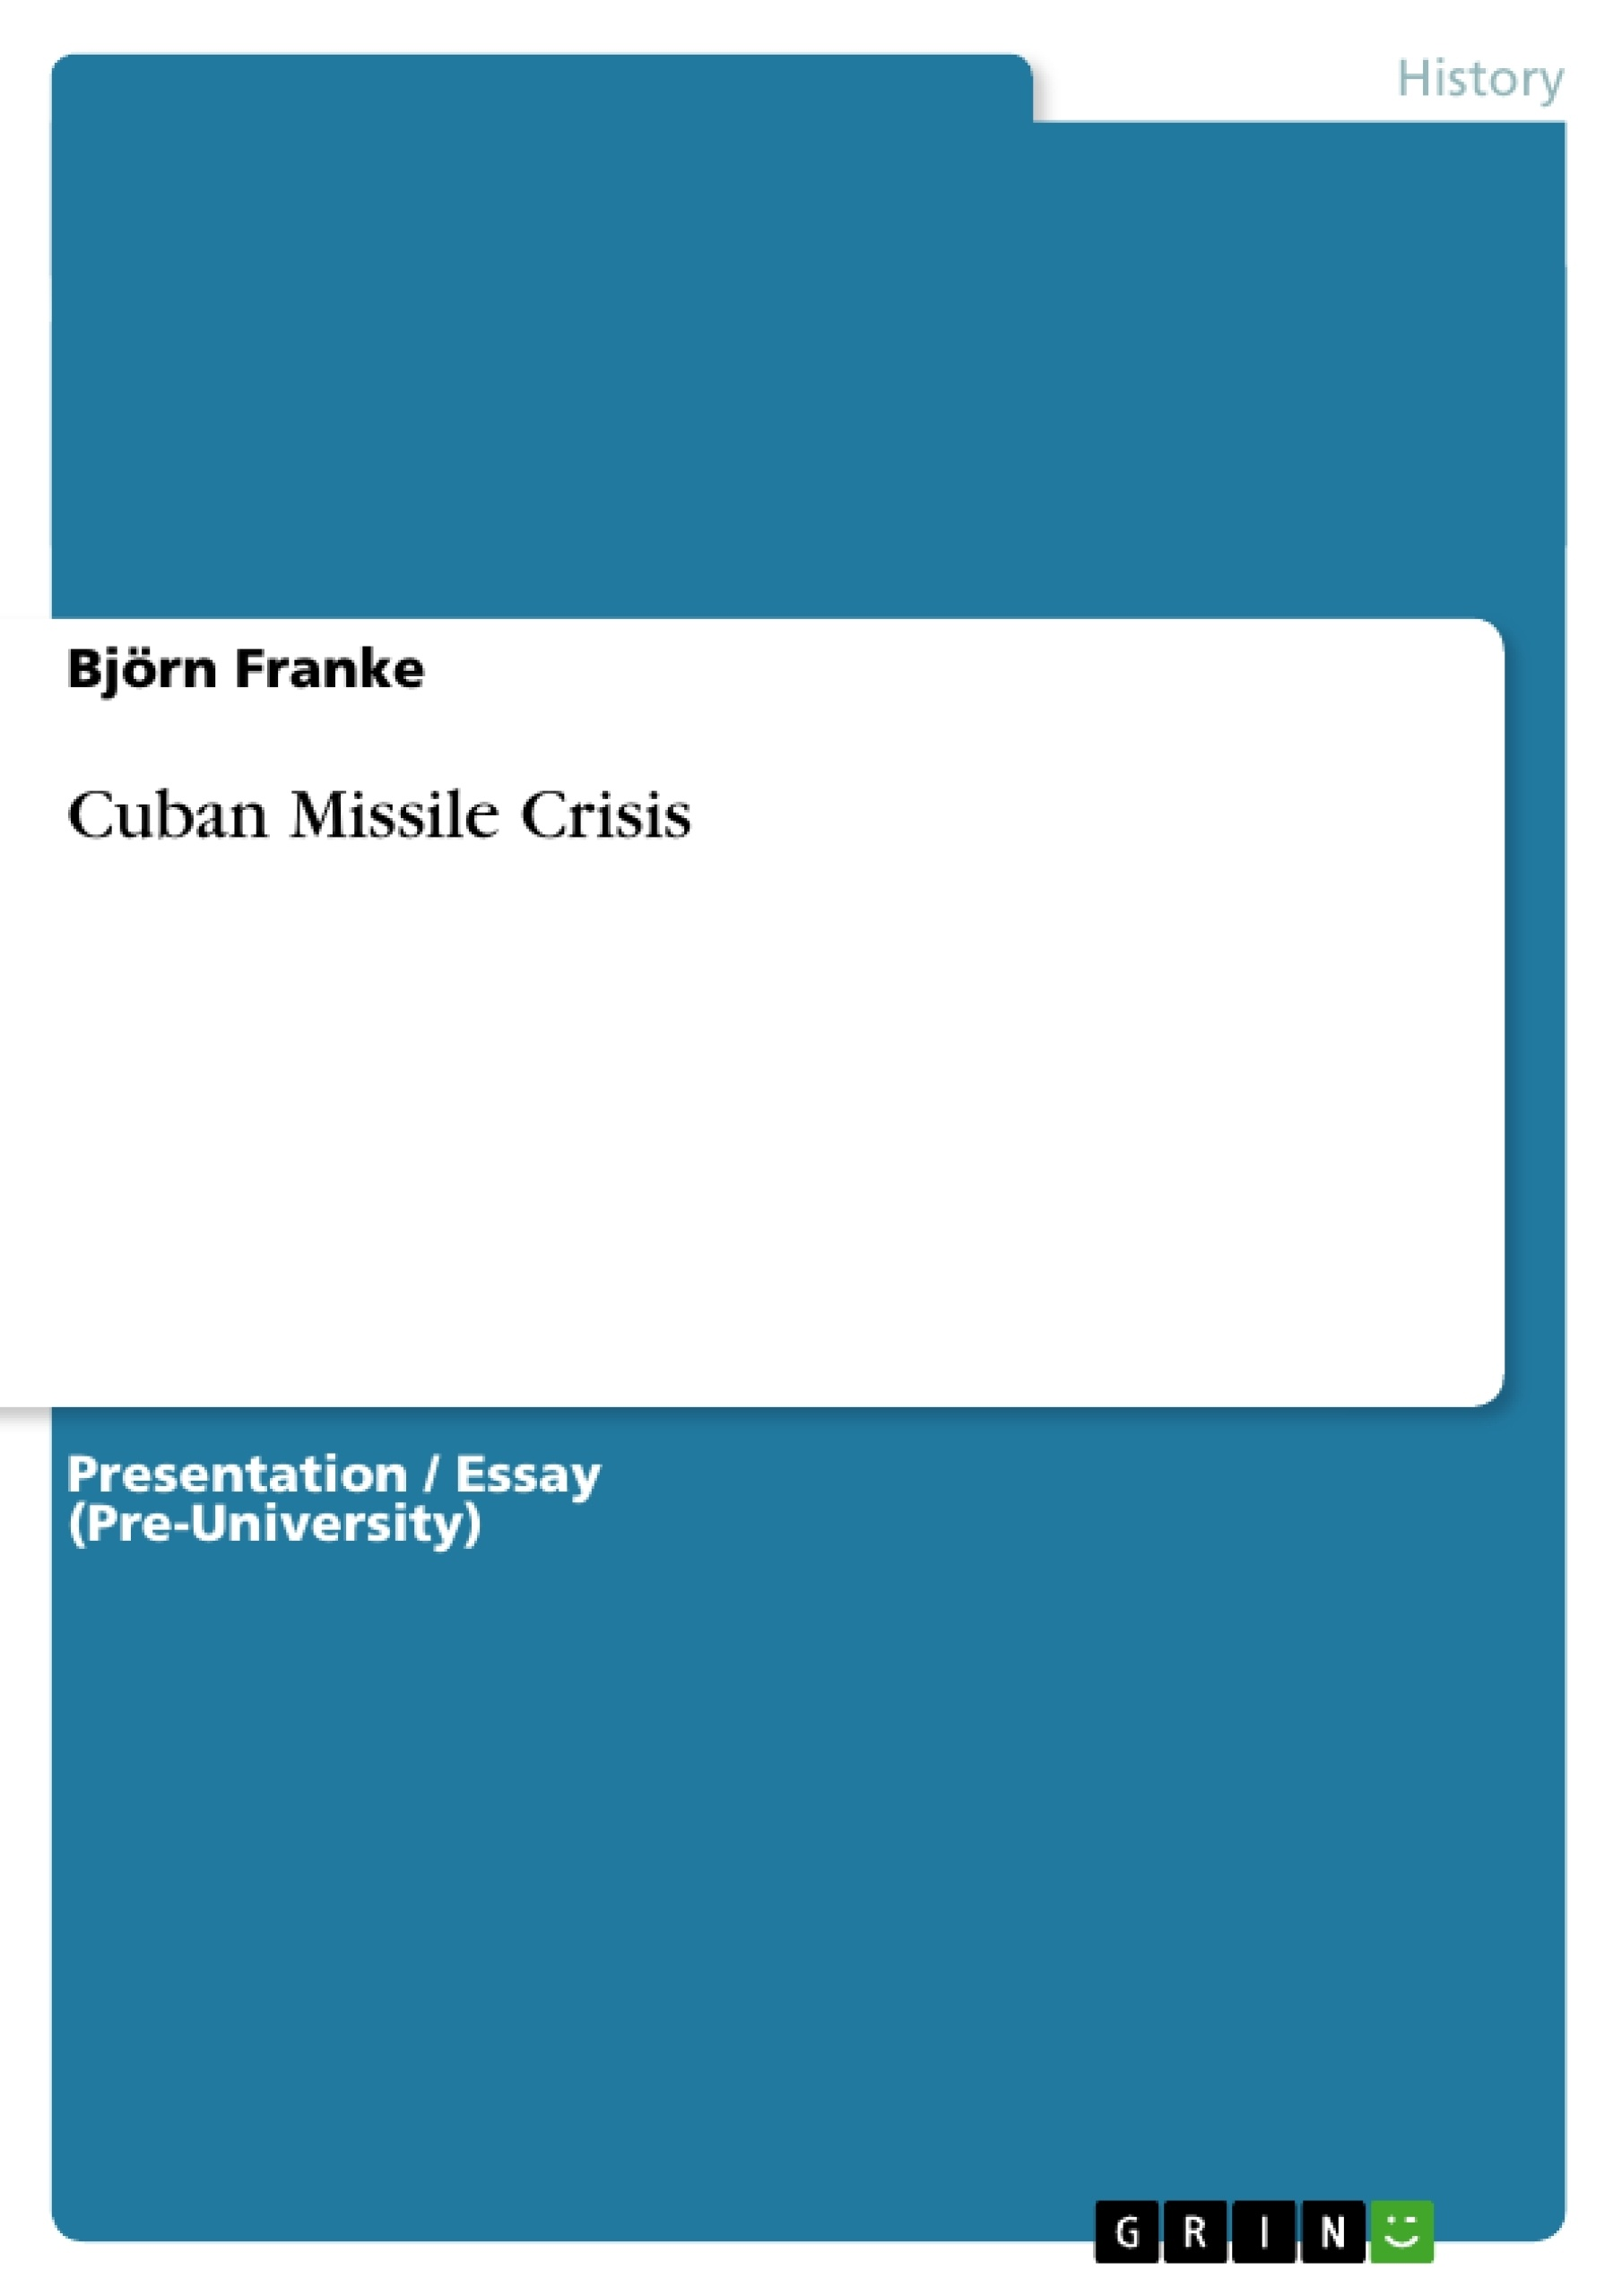 cuban missile crisis research paper thesis World history term papers (paper 3126) on cuban missile crisis: outline title the cuban missile crisis thesis statement the cuban missile crisis almost brought.